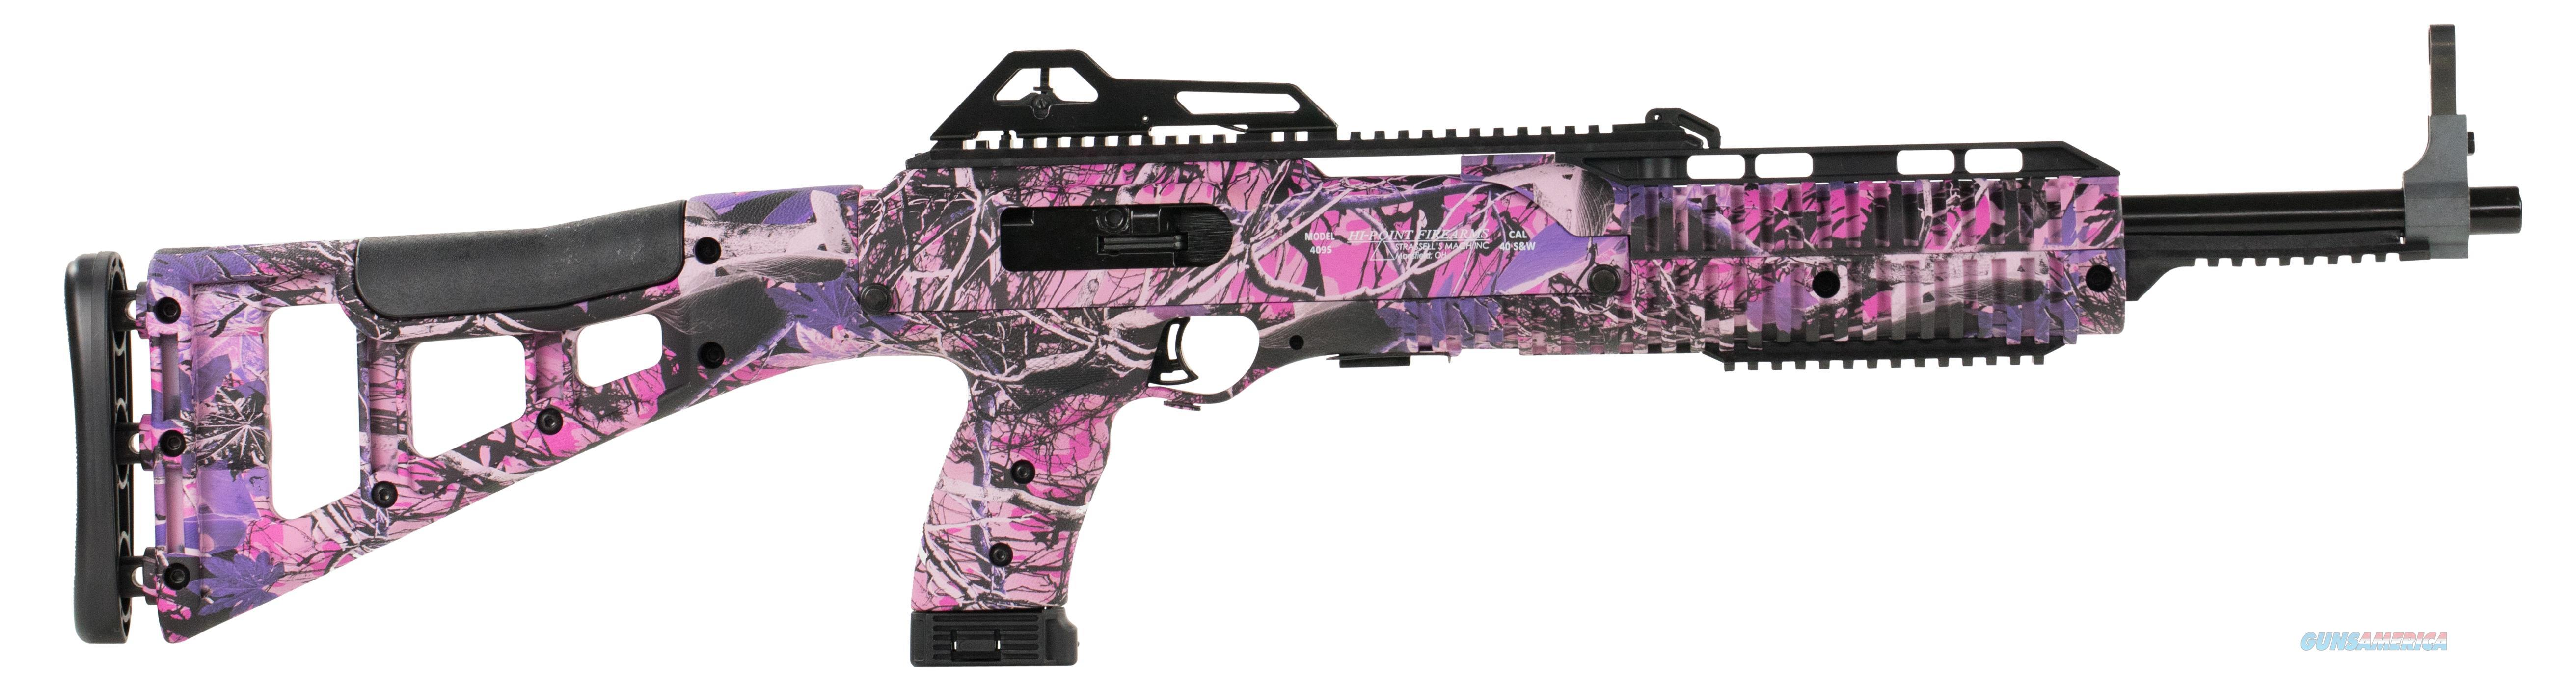 """Hi-Point 4095Tspi 4095Ts Carbine  Semi-Automatic 40 Smith & Wesson (S&W) 17.5"""" 10+1 Polymer Skeleton Country Girl Camo Stk Country Girl Camo 4095TSPI  Guns > Rifles > H Misc Rifles"""